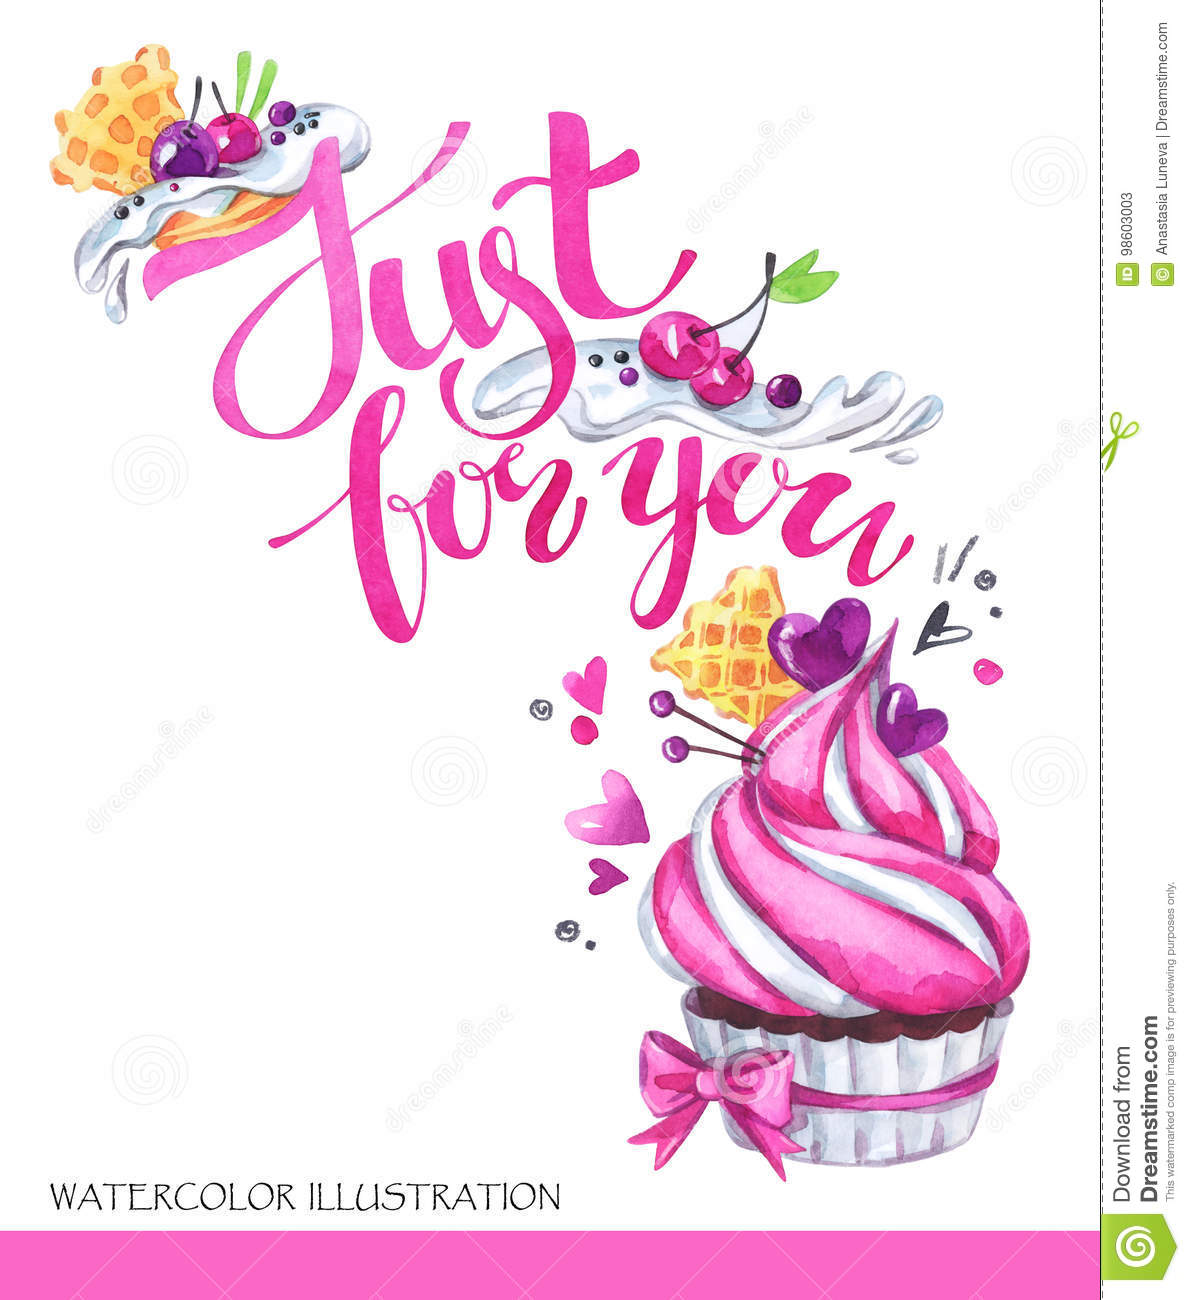 watercolor tasty dessert congratulation card with pleasant words